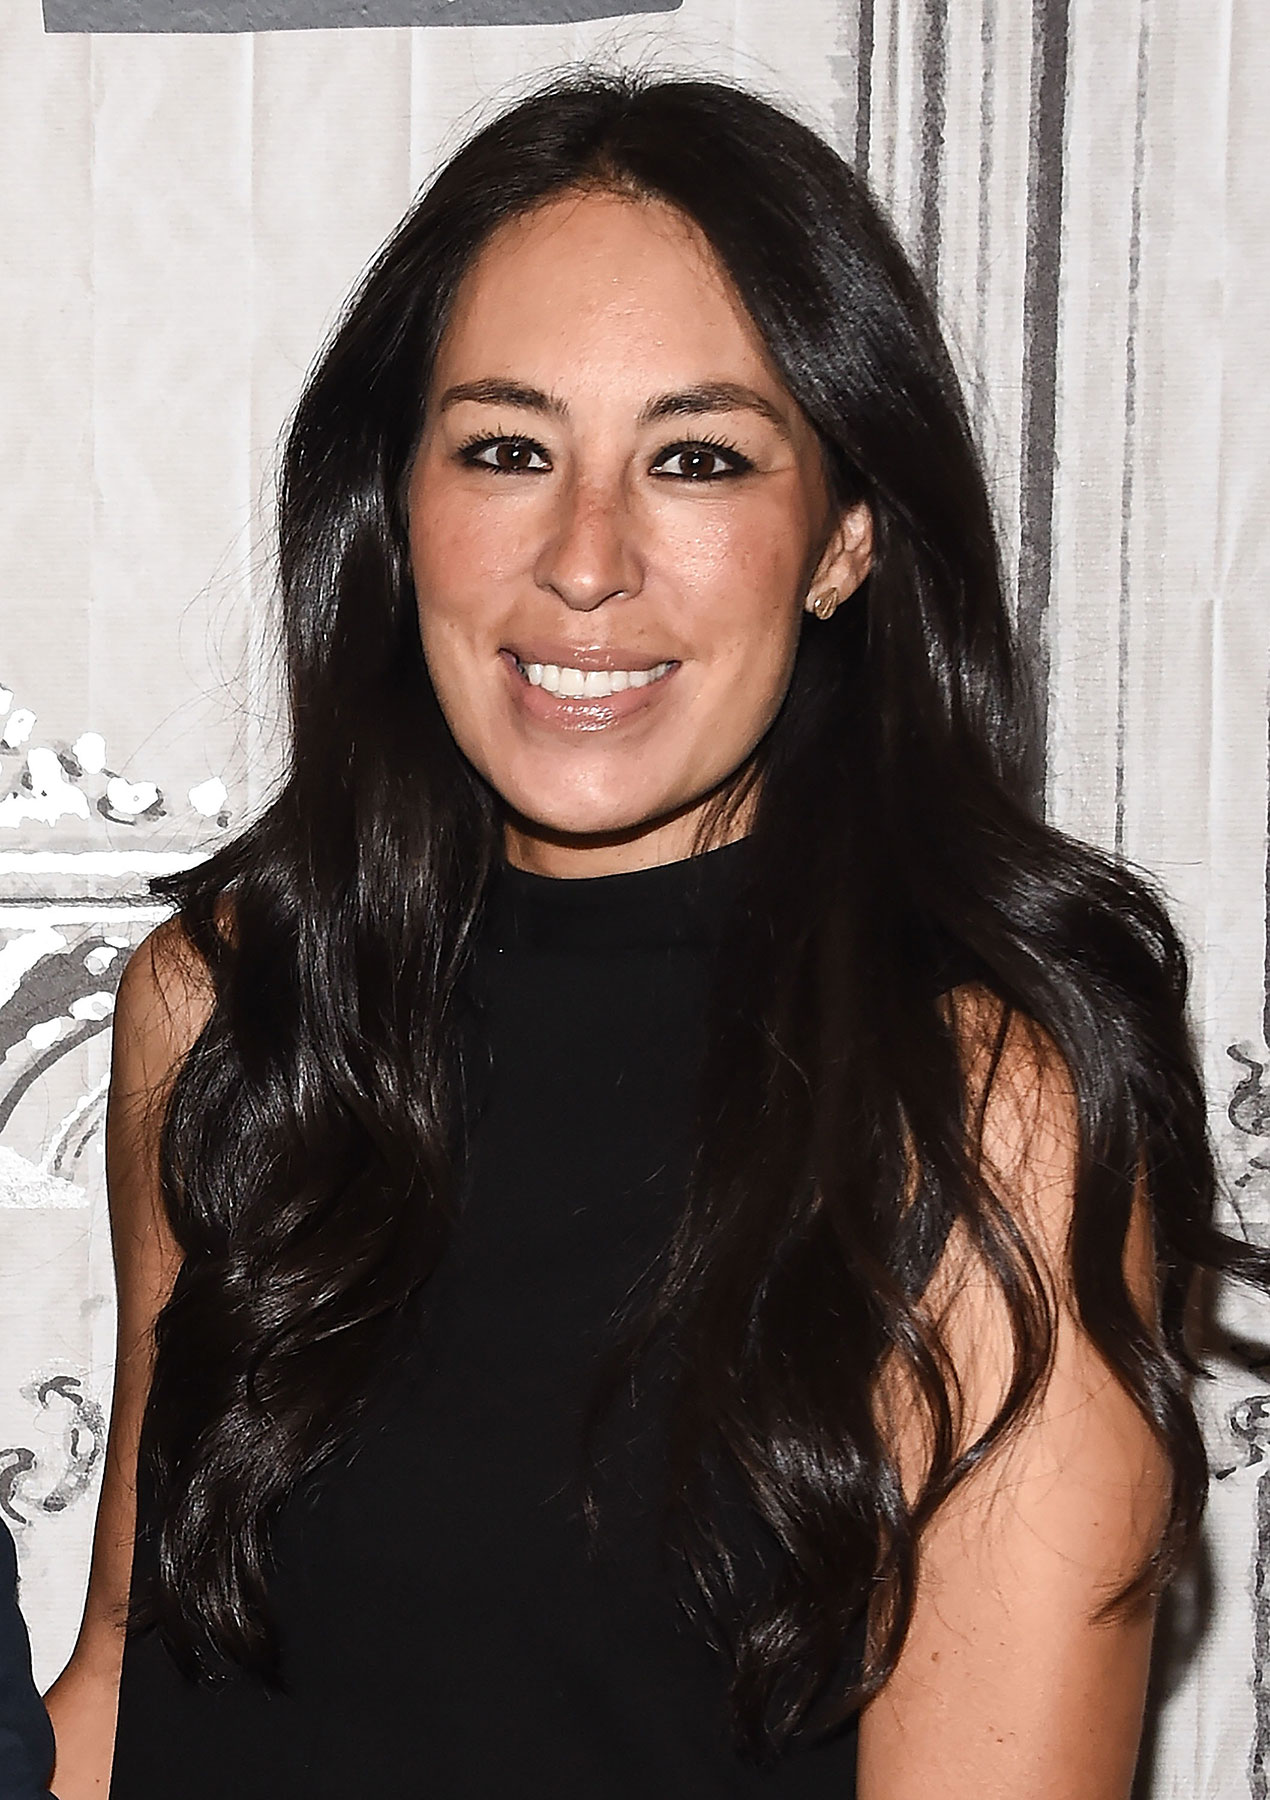 The Drugstore Beauty Products Joanna Gaines Swears By